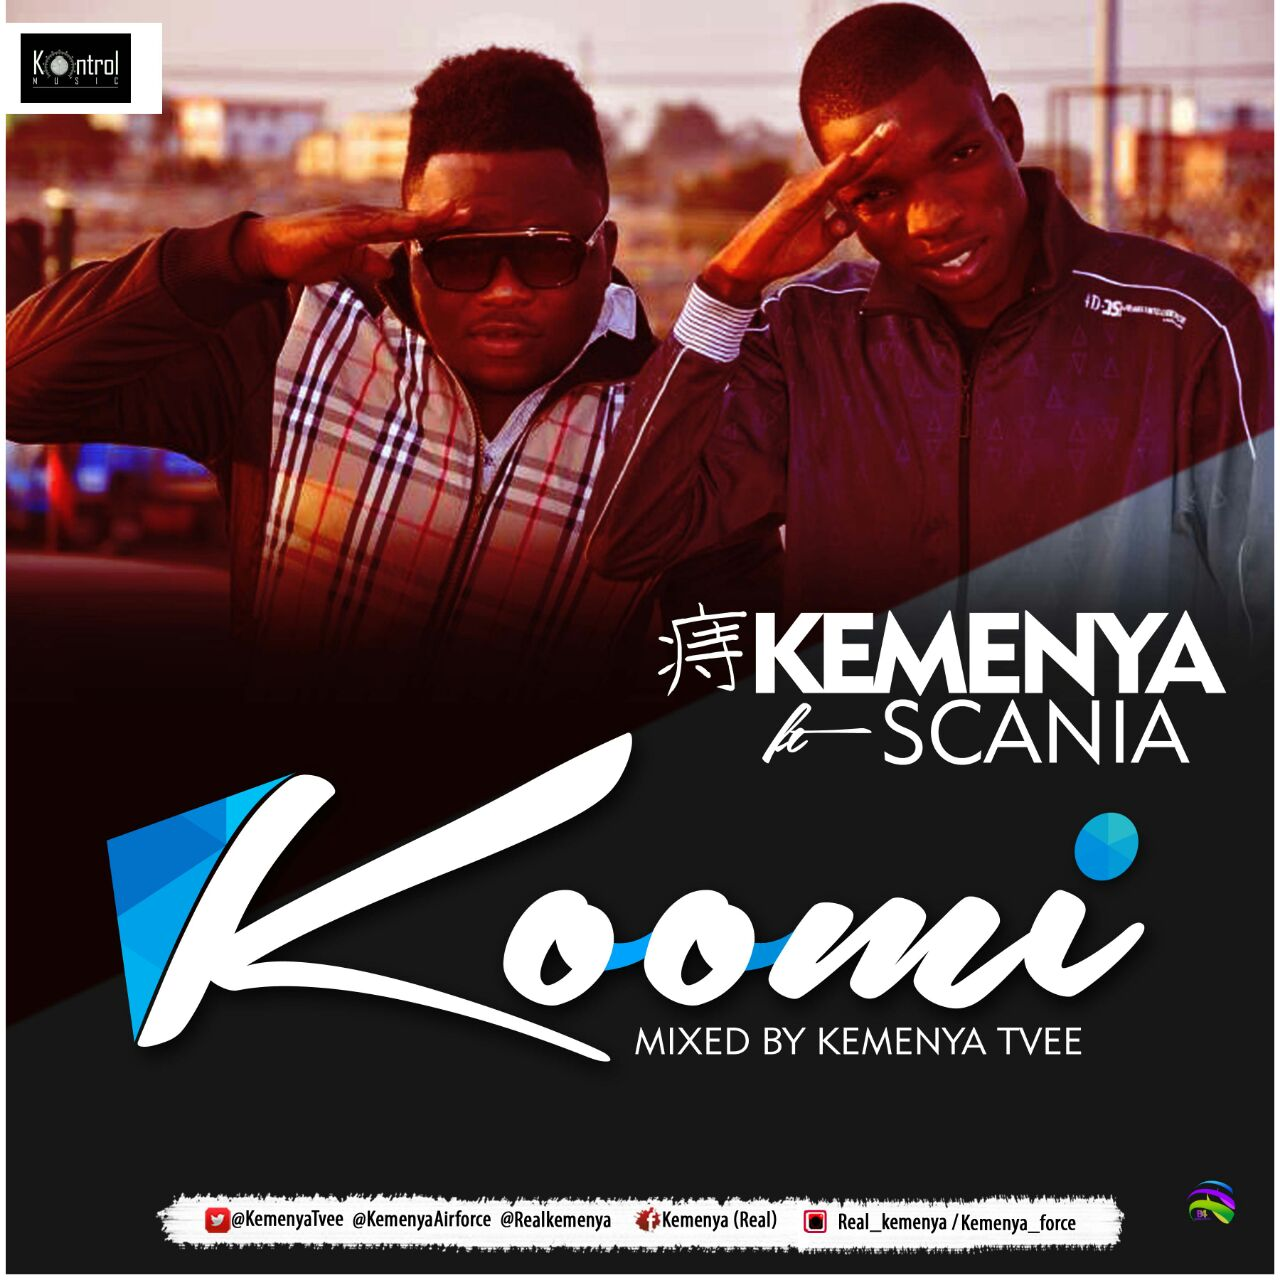 Kemenya ft Scania - Koomi (Mixed by KemenyaTVee)